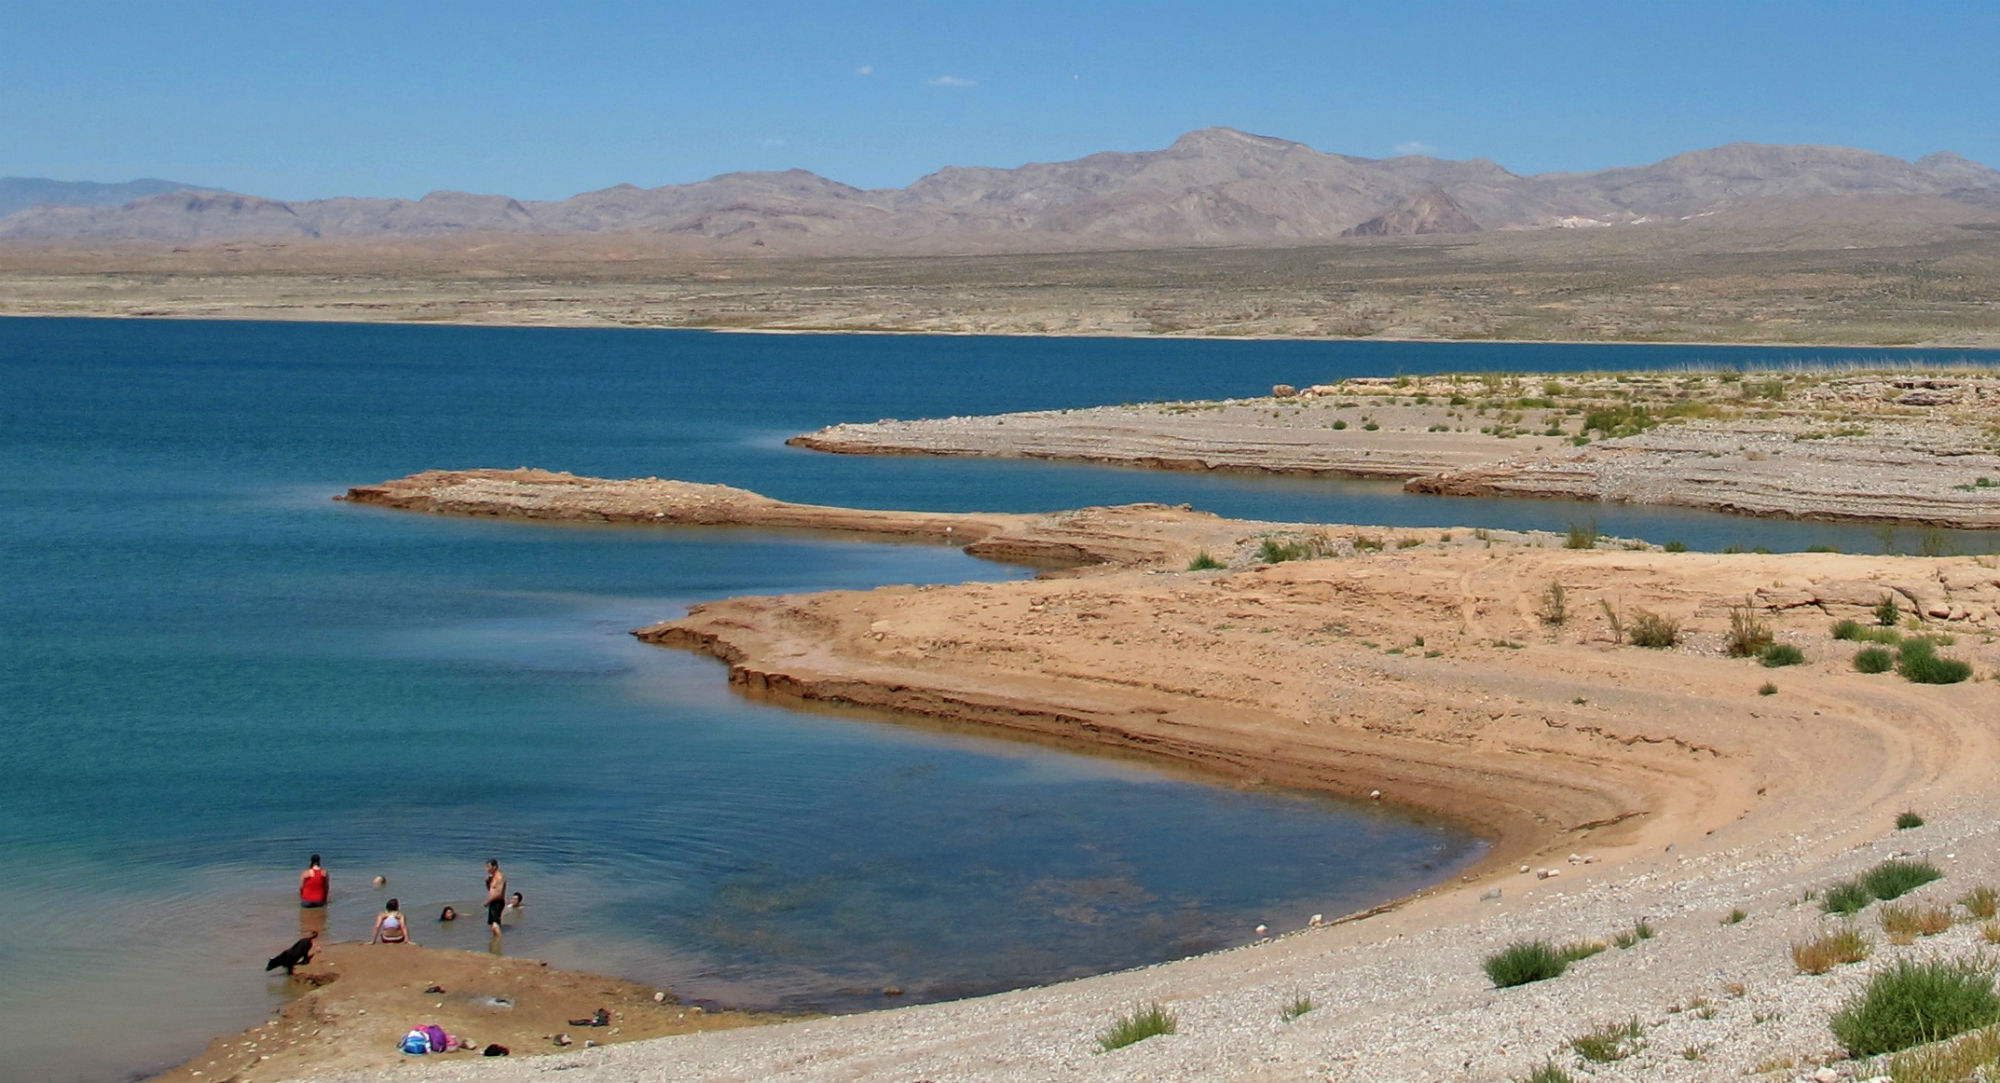 On Mead's western shores, miles of exposed shoreline now ring the lake.